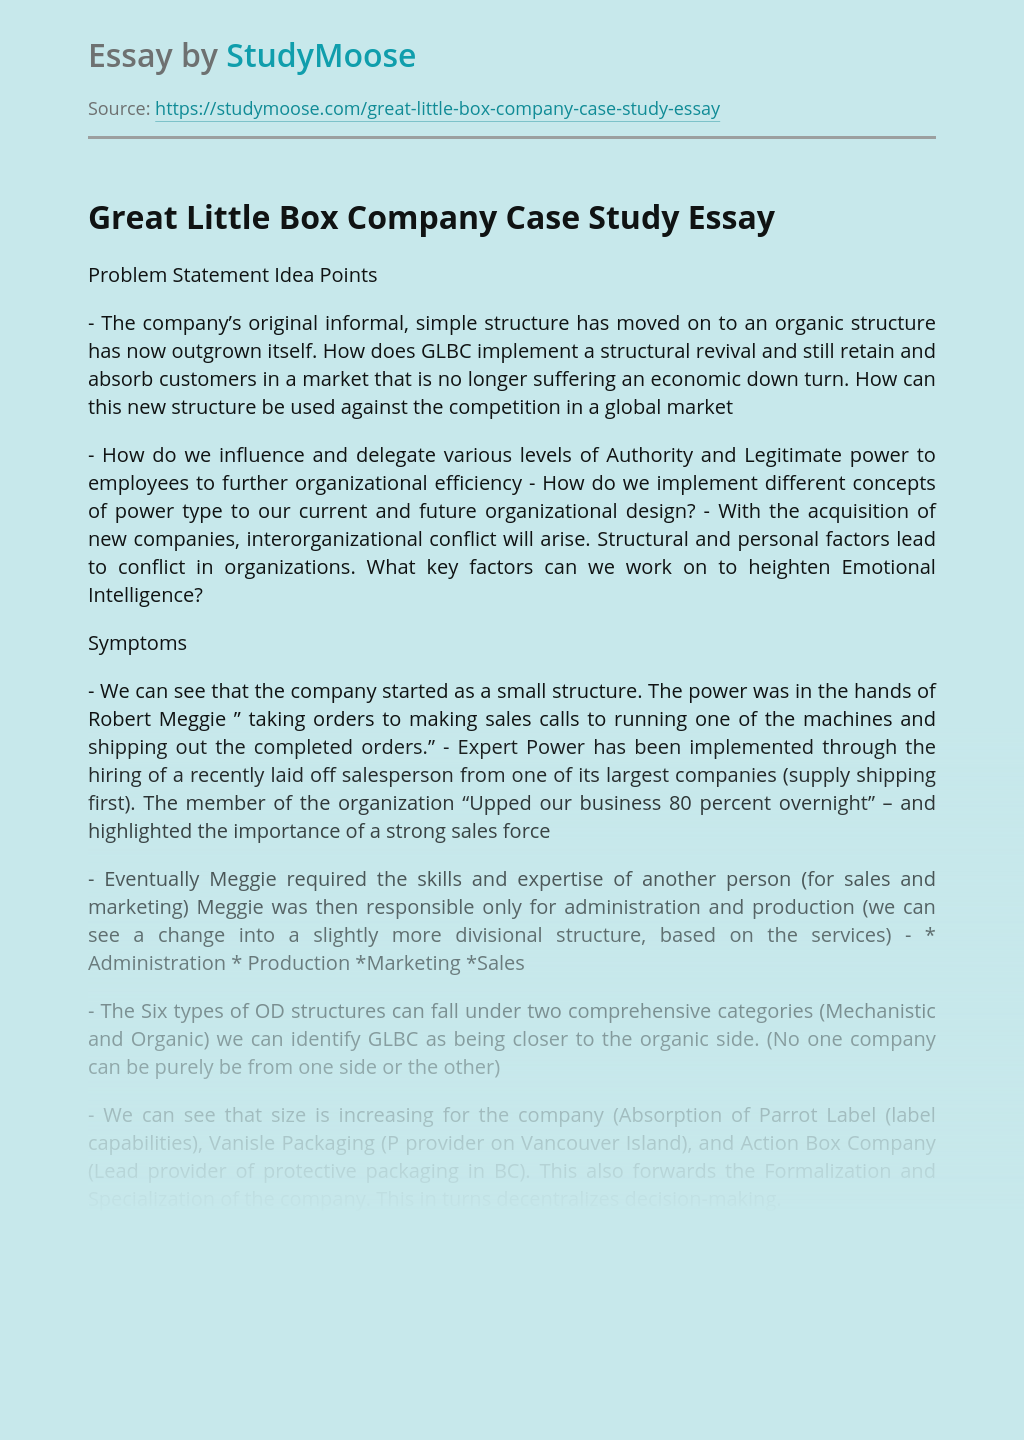 Great Little Box Company Case Study